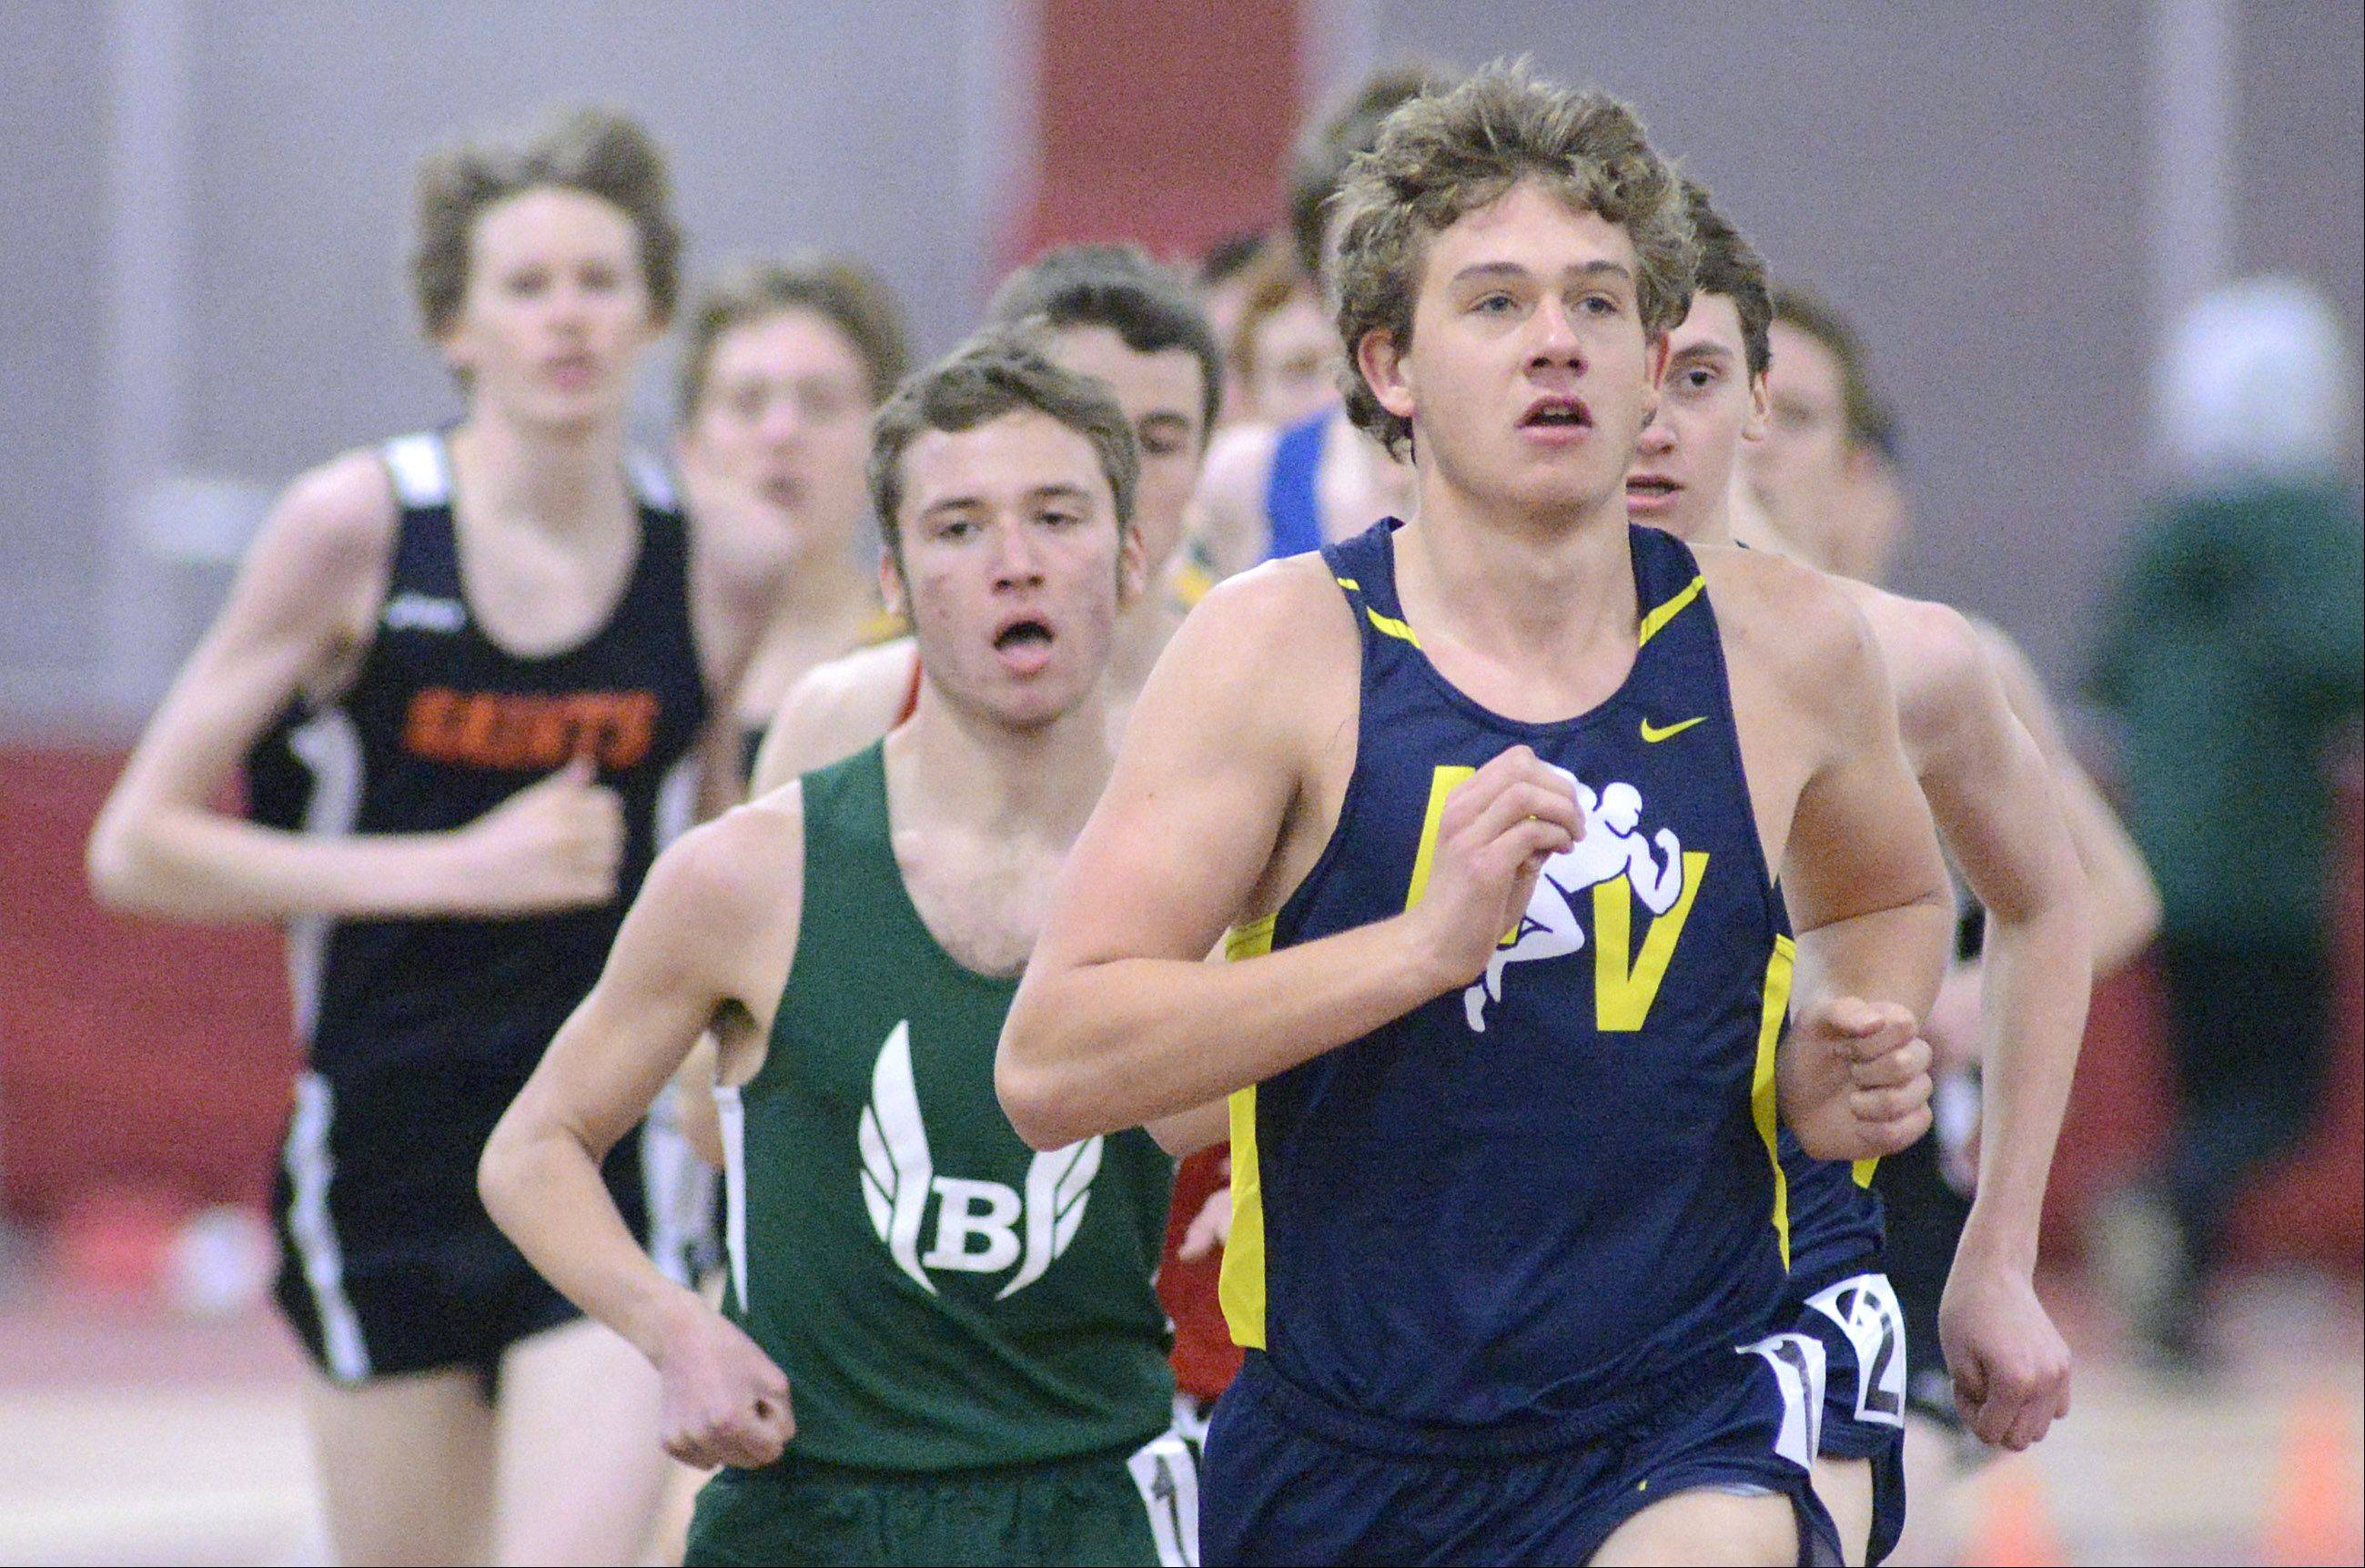 Nequa Valley's Nick Bushelle leads the 3200 meter run for the whole race and takes the win at the Upstate Eight Conference in Batavia on Saturday, March 16.